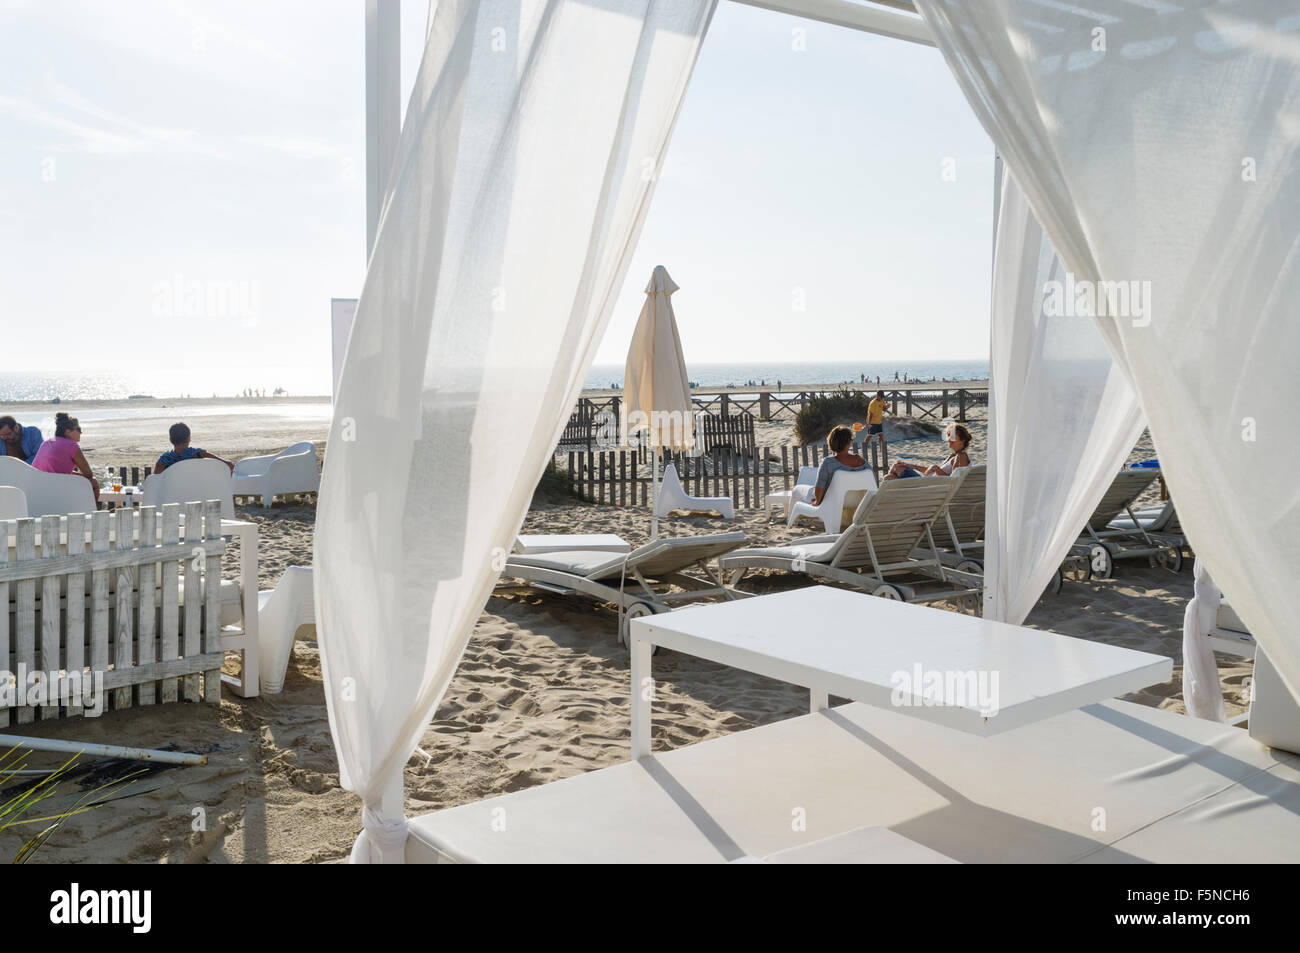 Sunbeds at a chill out beach bar in Tarifa, Cadiz province, Andalusia, Spain - Stock Image